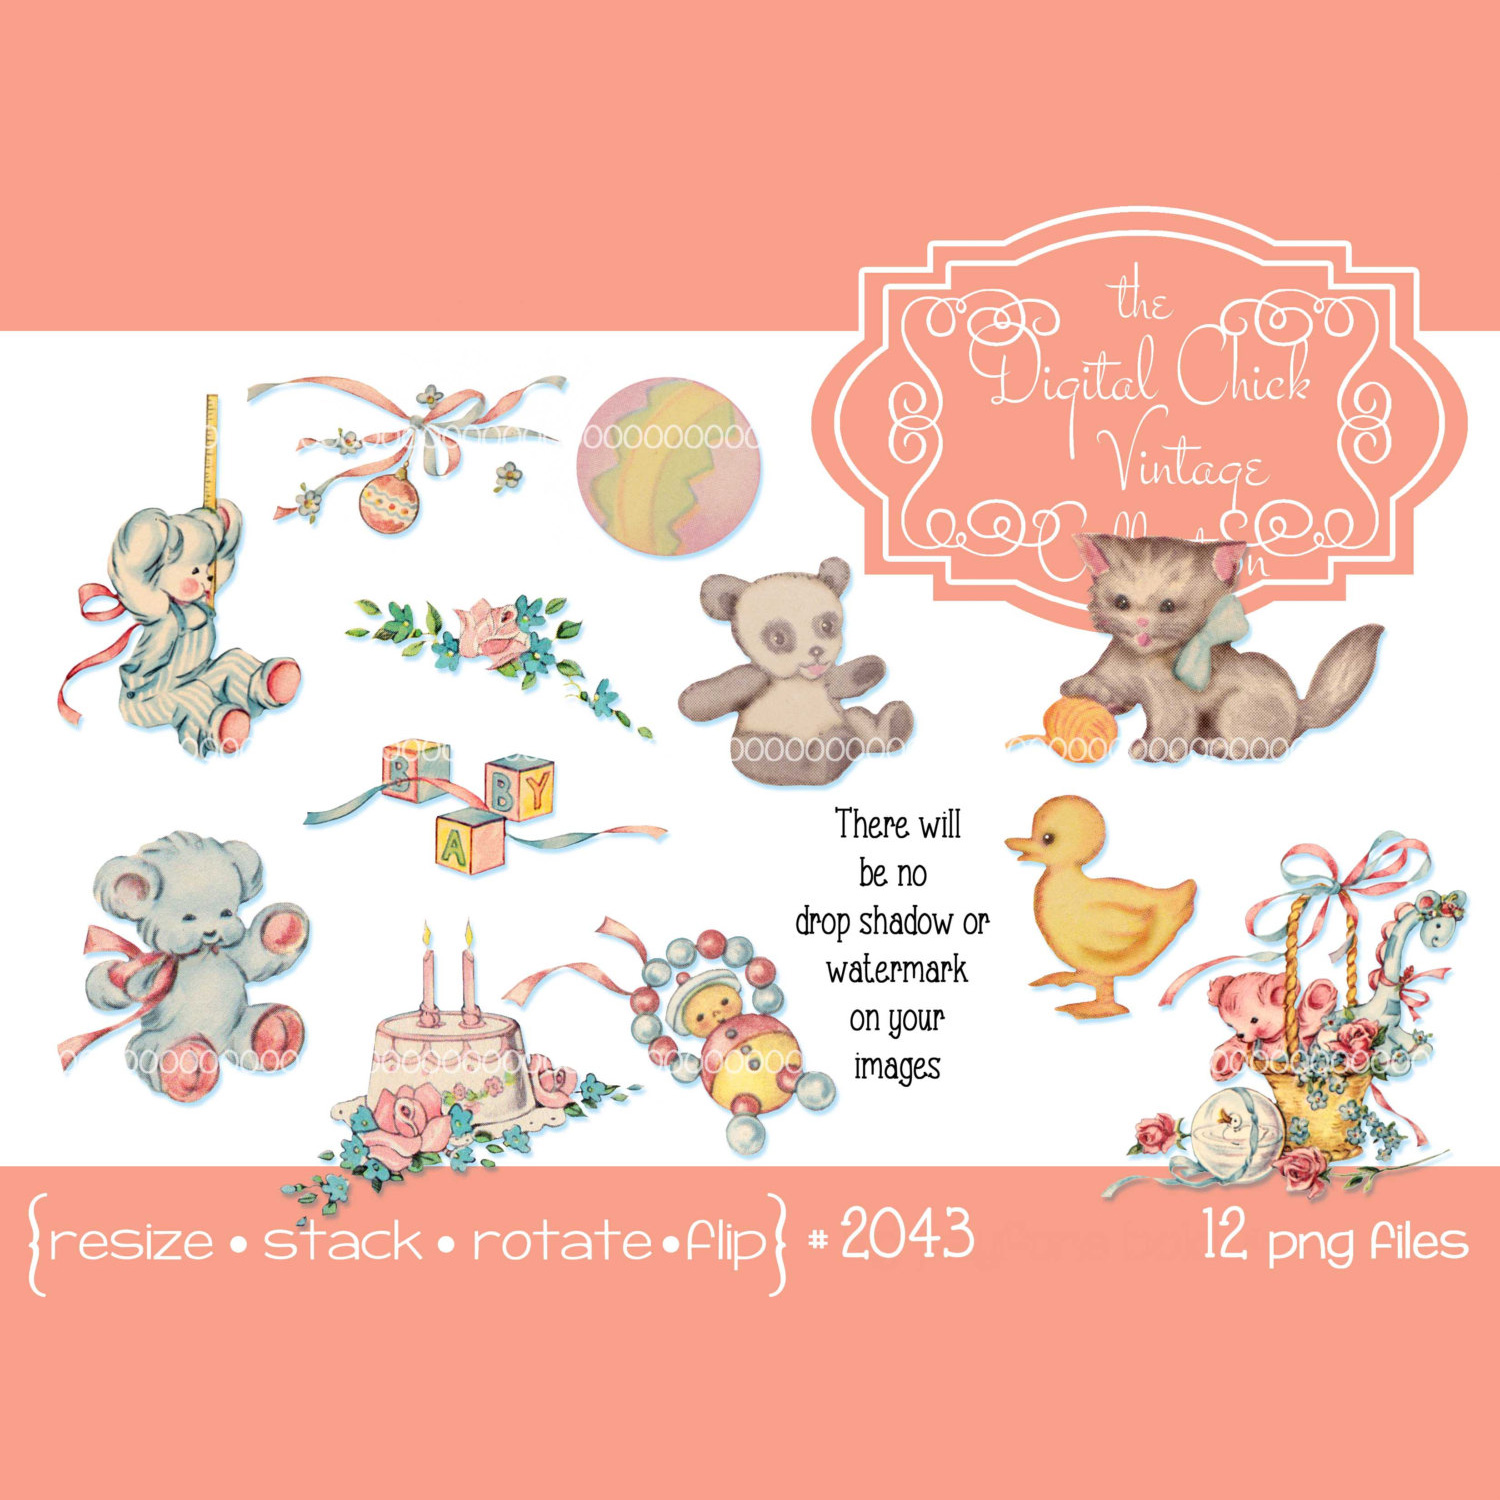 Vintage baby rattle clipart graphic freeuse download Vintage Little Girl Boy Clipart, baby toys, birthday cake, teddy bear,  kitten, duck graphic freeuse download